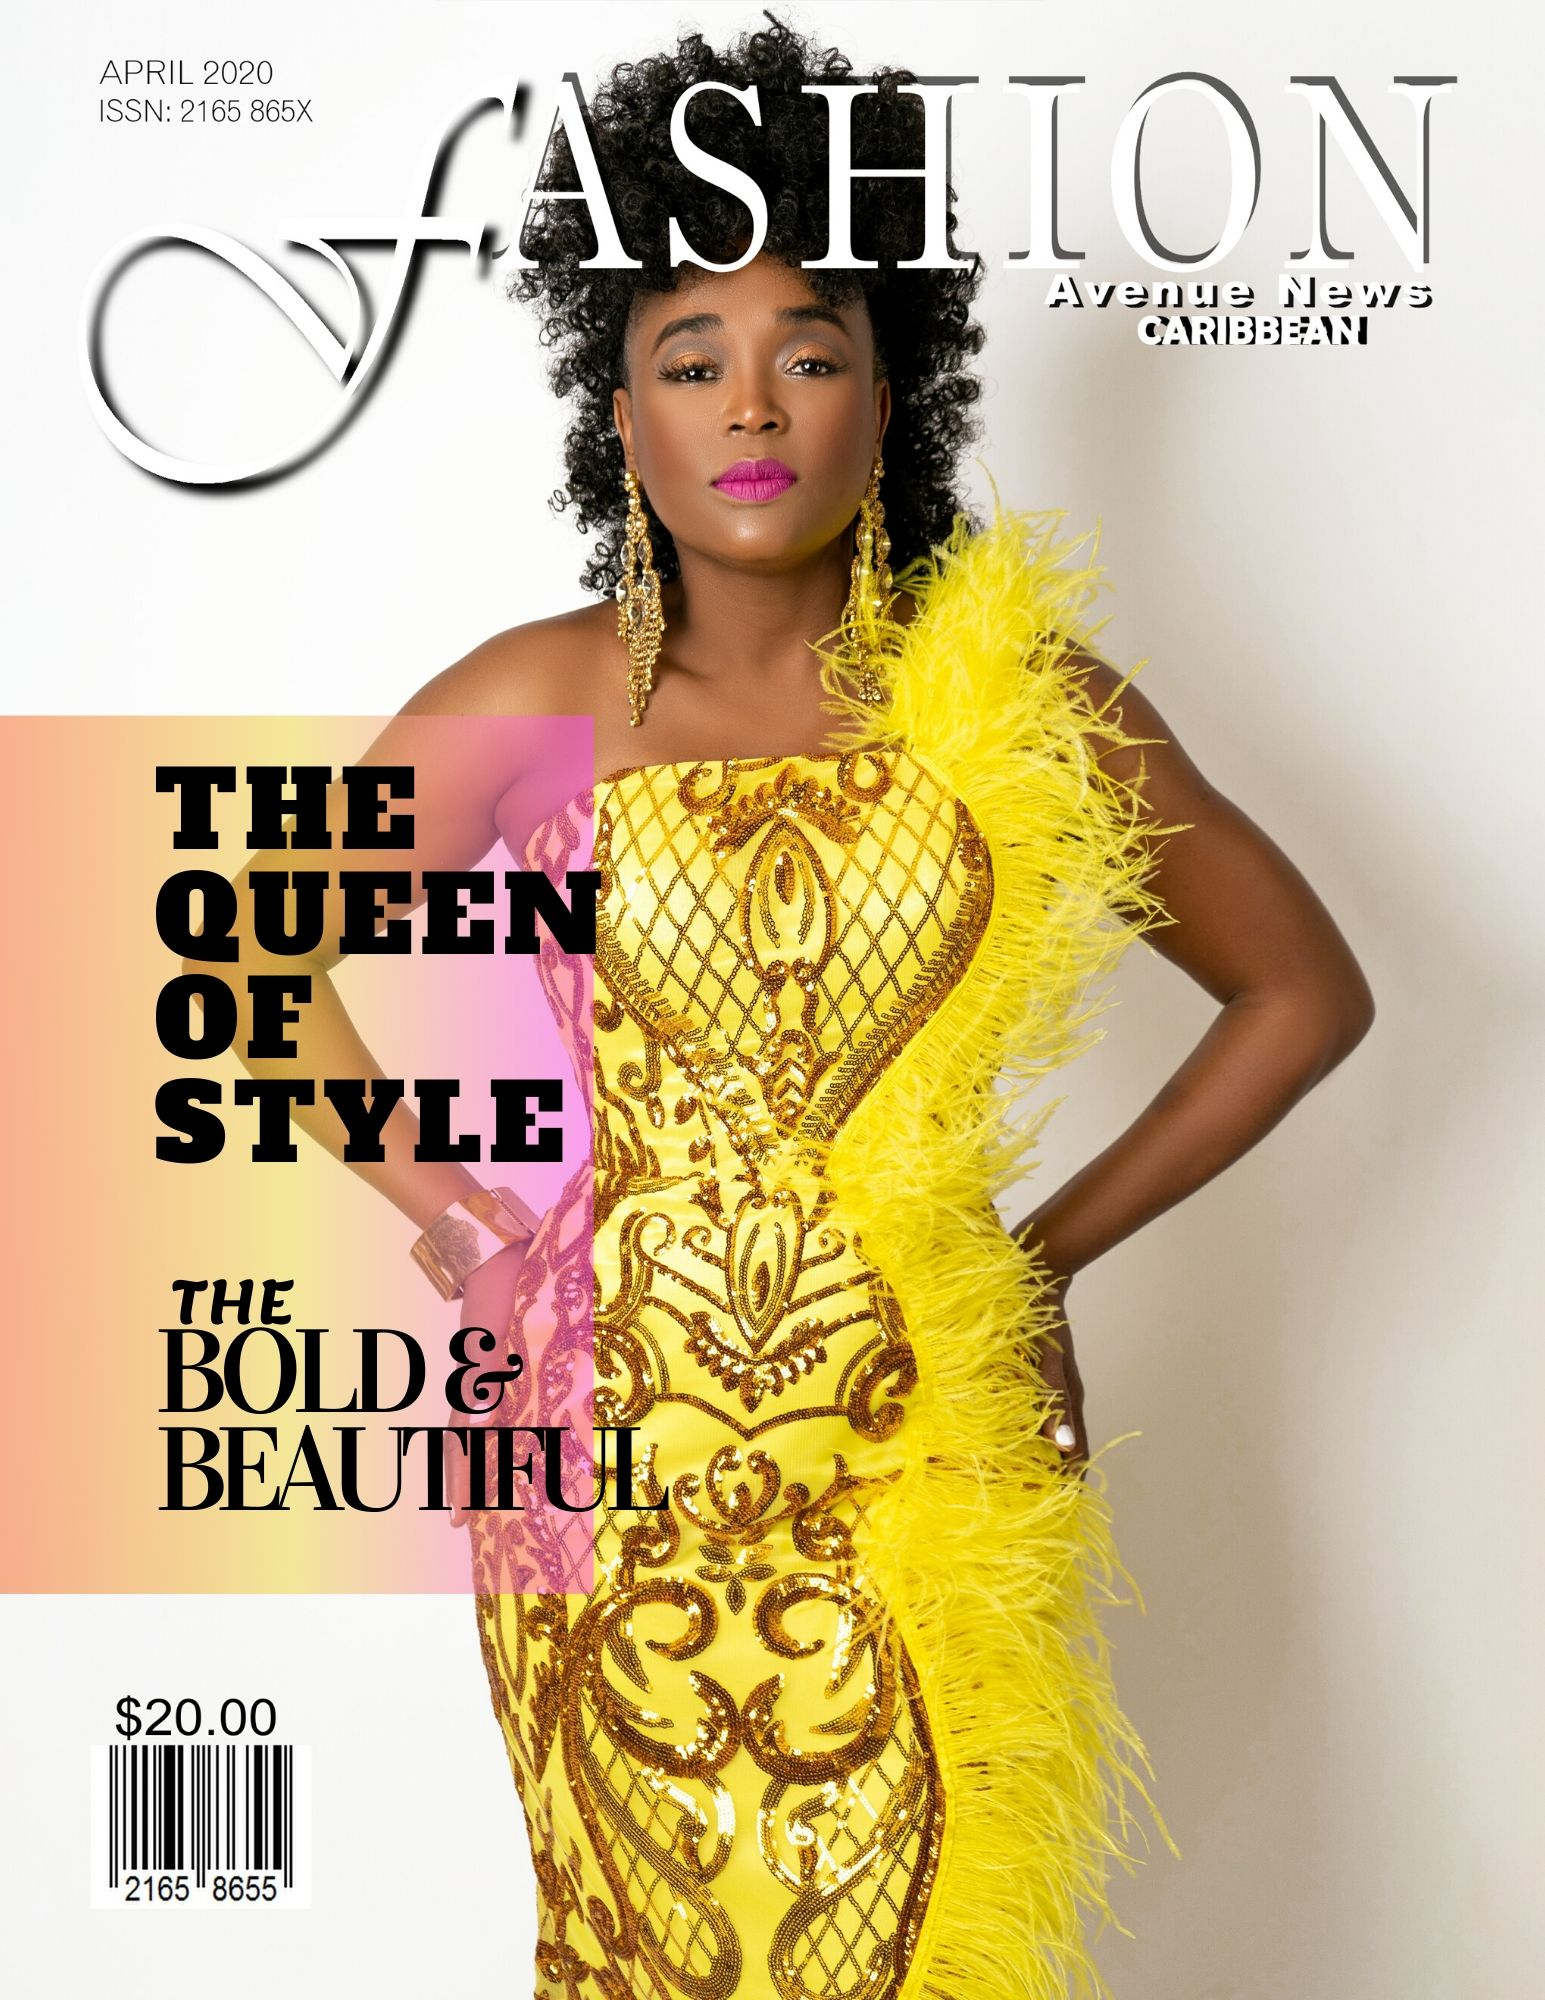 FAN CARIBBEAN FEATURING COVER MODEL BOSS LADY WENDY ISAAC